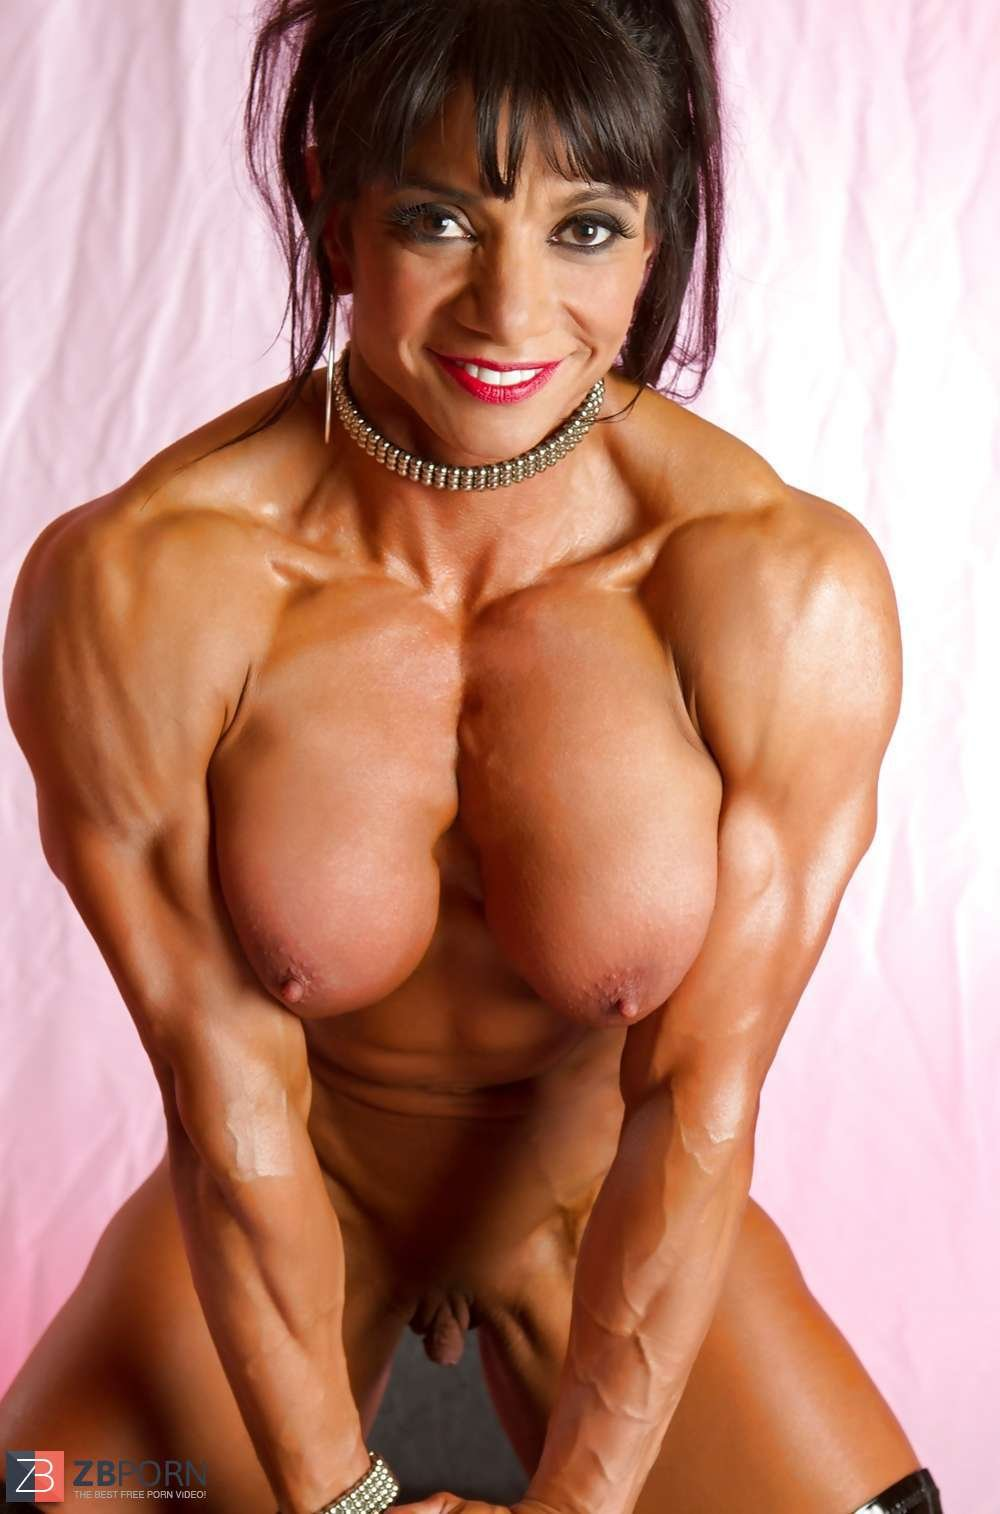 Muscle girls porn image, amateur girl hiking nude